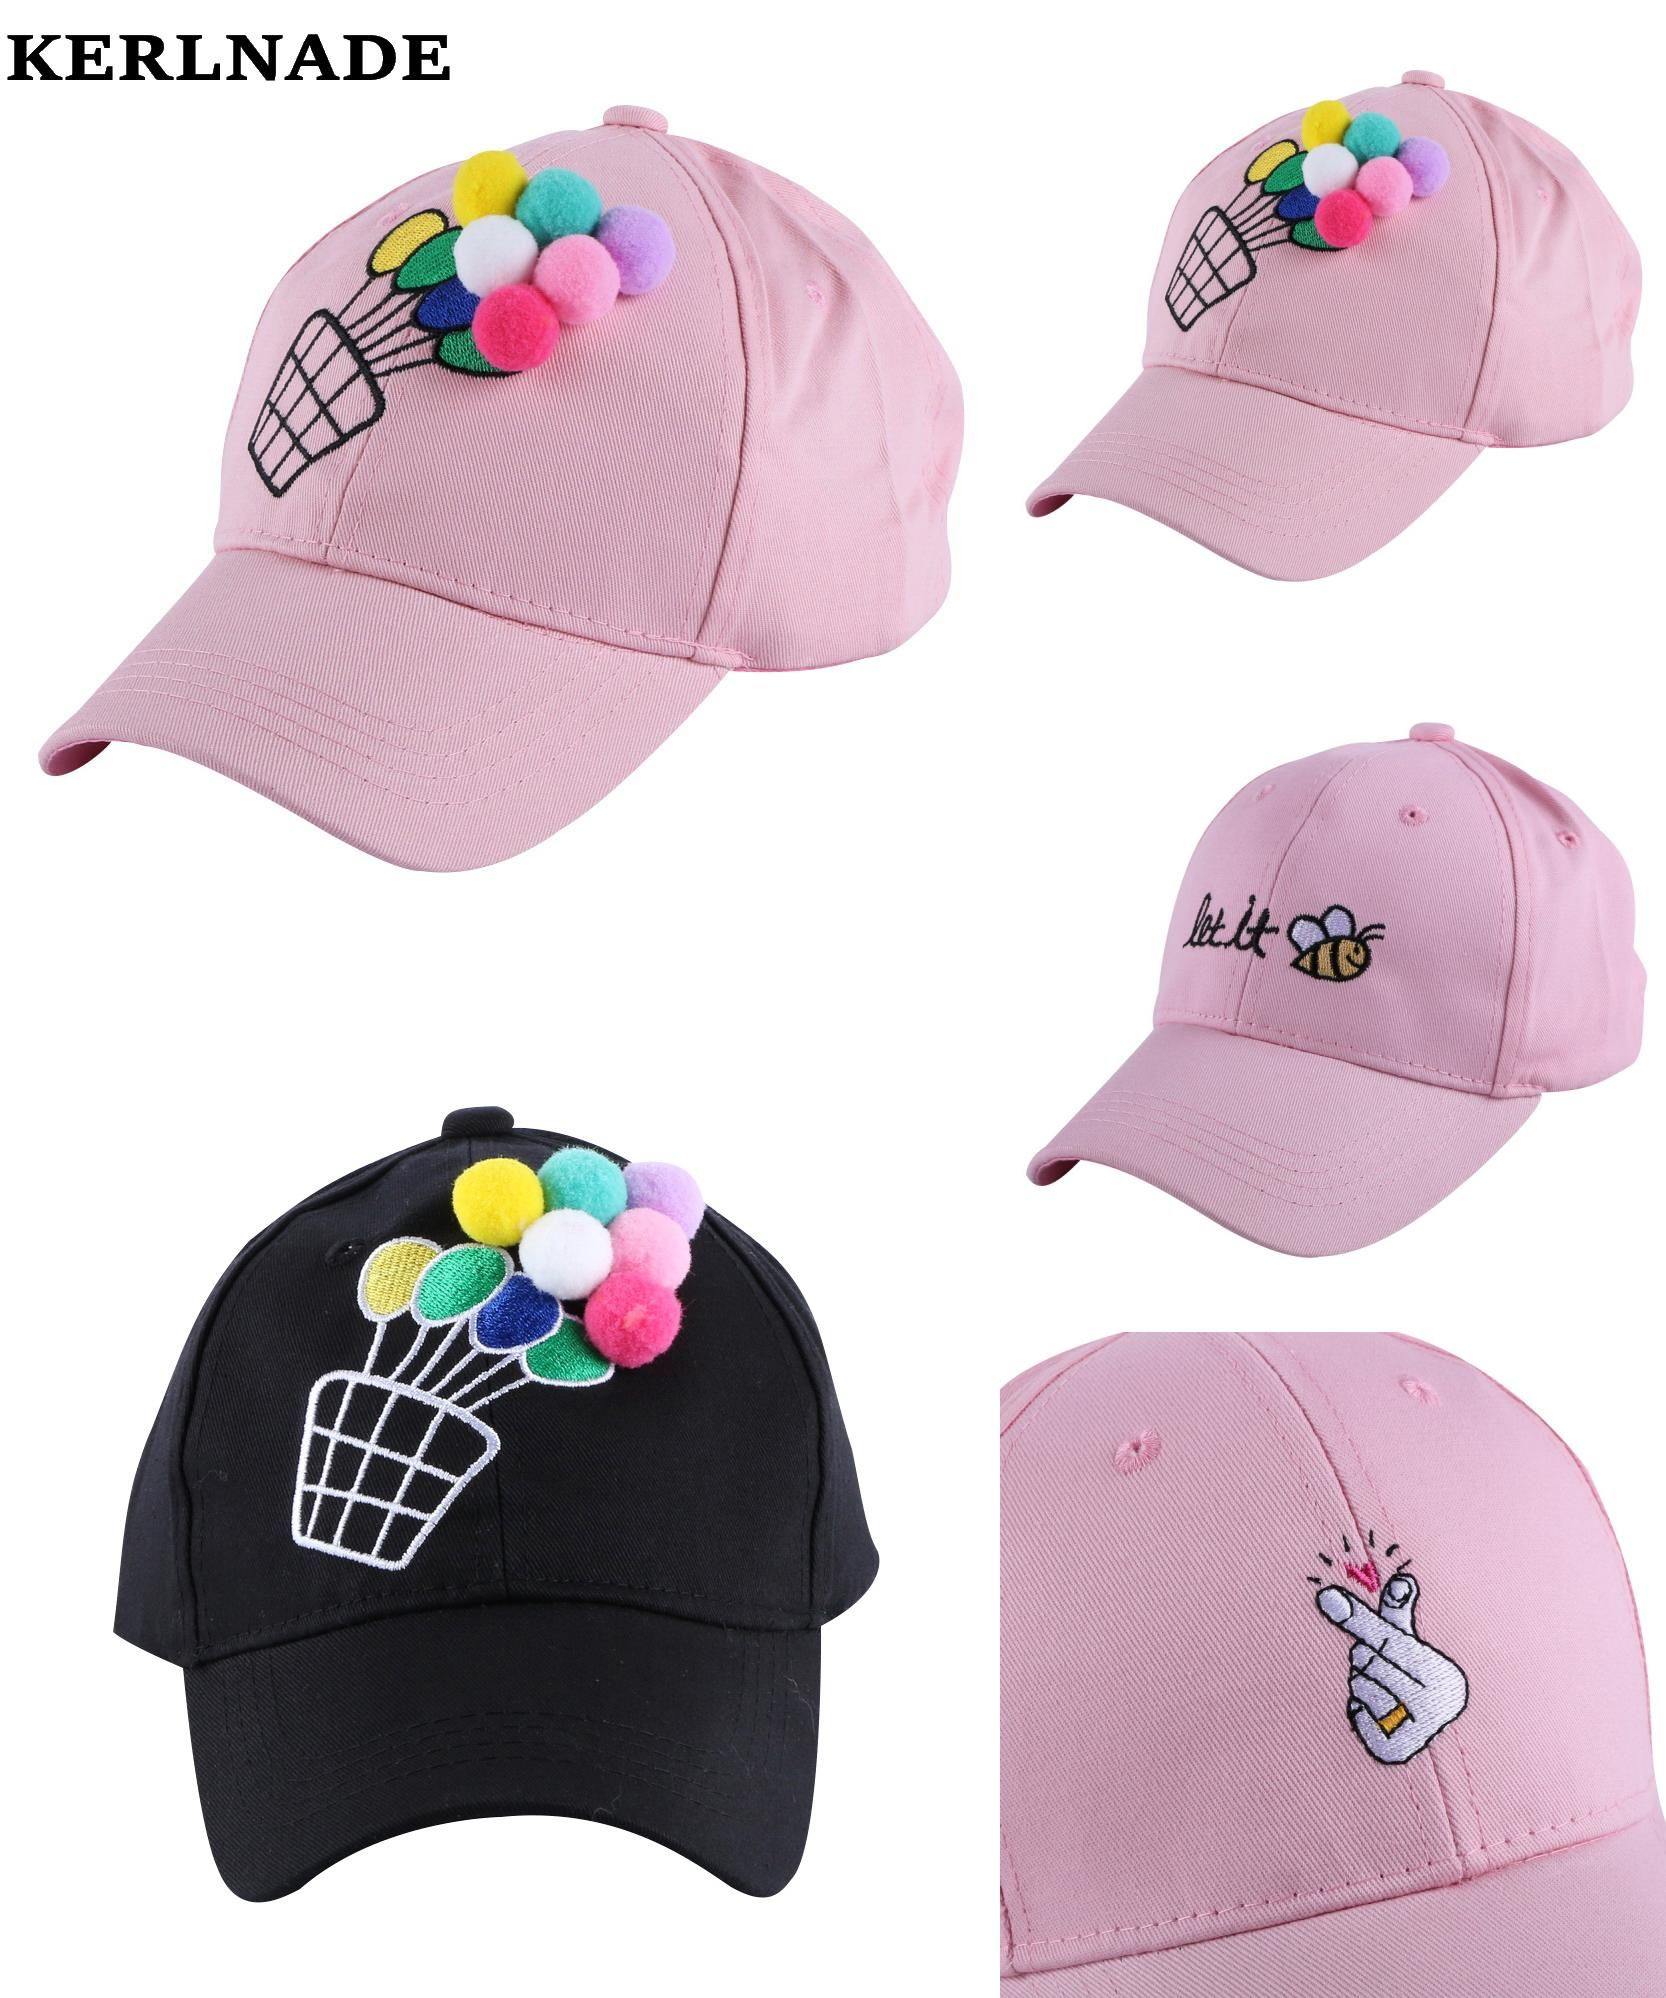 Visit to Buy] New design beautiful cute boys girls kids summer hats cool hat  wholesale fashion children baseball caps baby hat … | Summer hats, Cool hats,  Baby cap